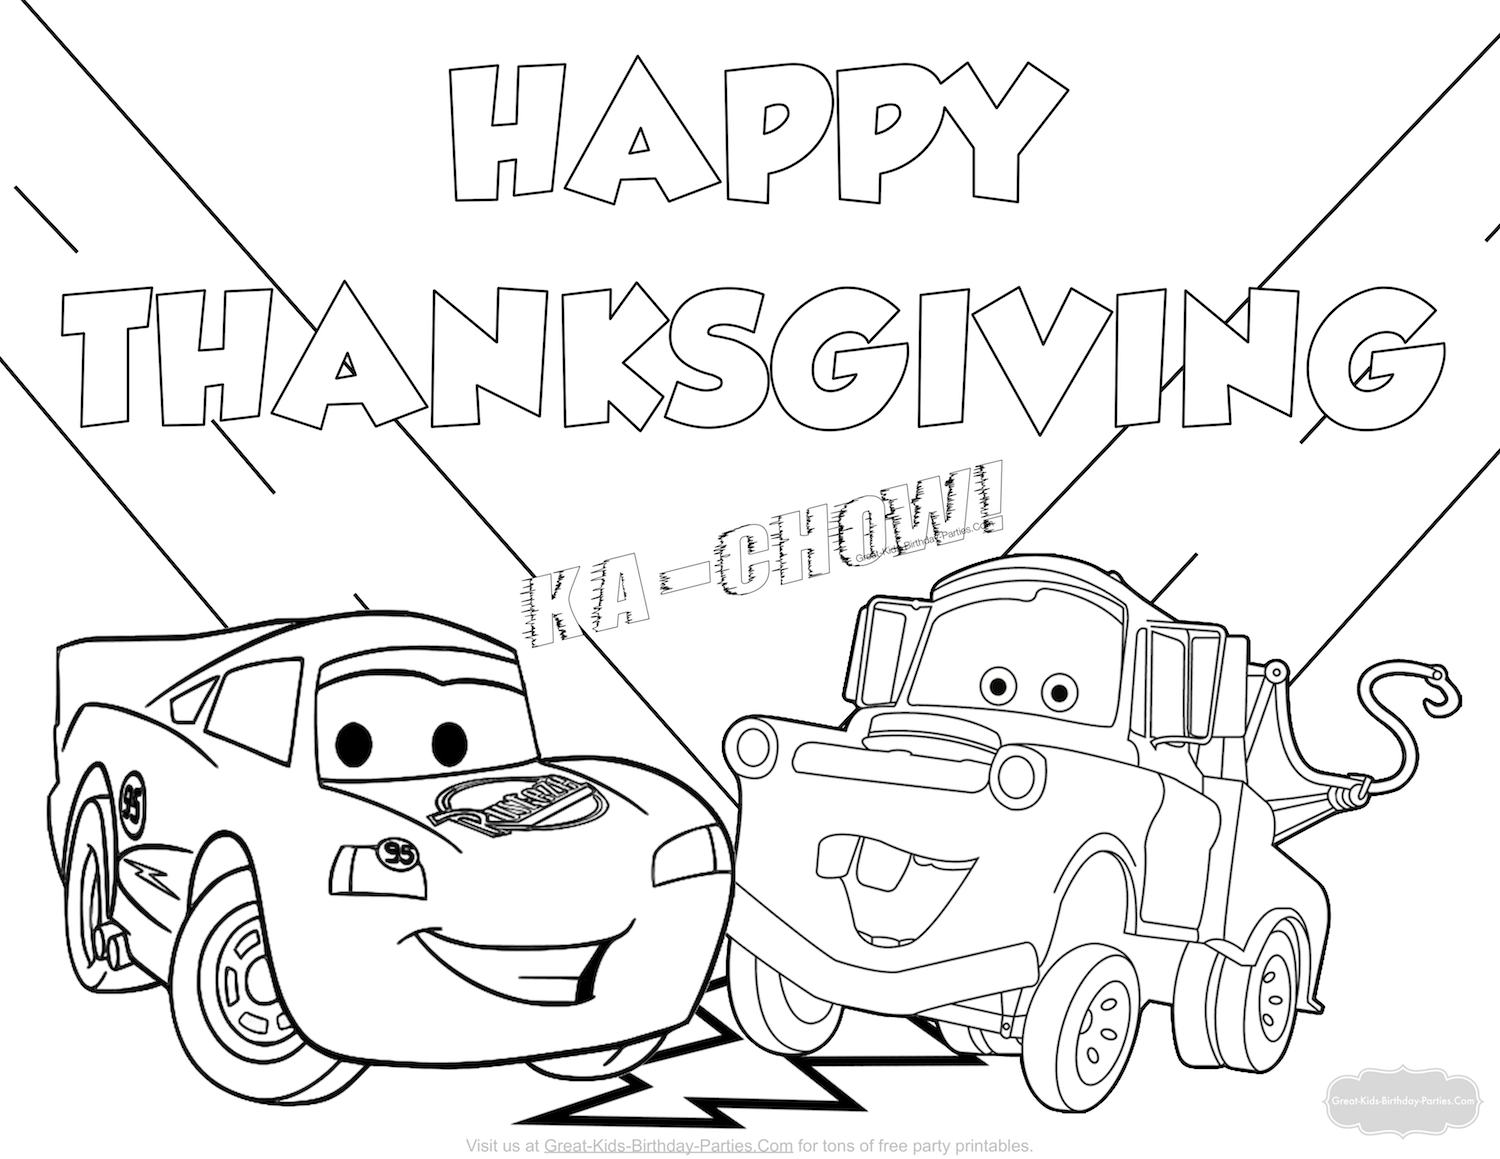 thanksgiving day coloring pages thanksgiving day coloring pages coloring pages to pages coloring thanksgiving day